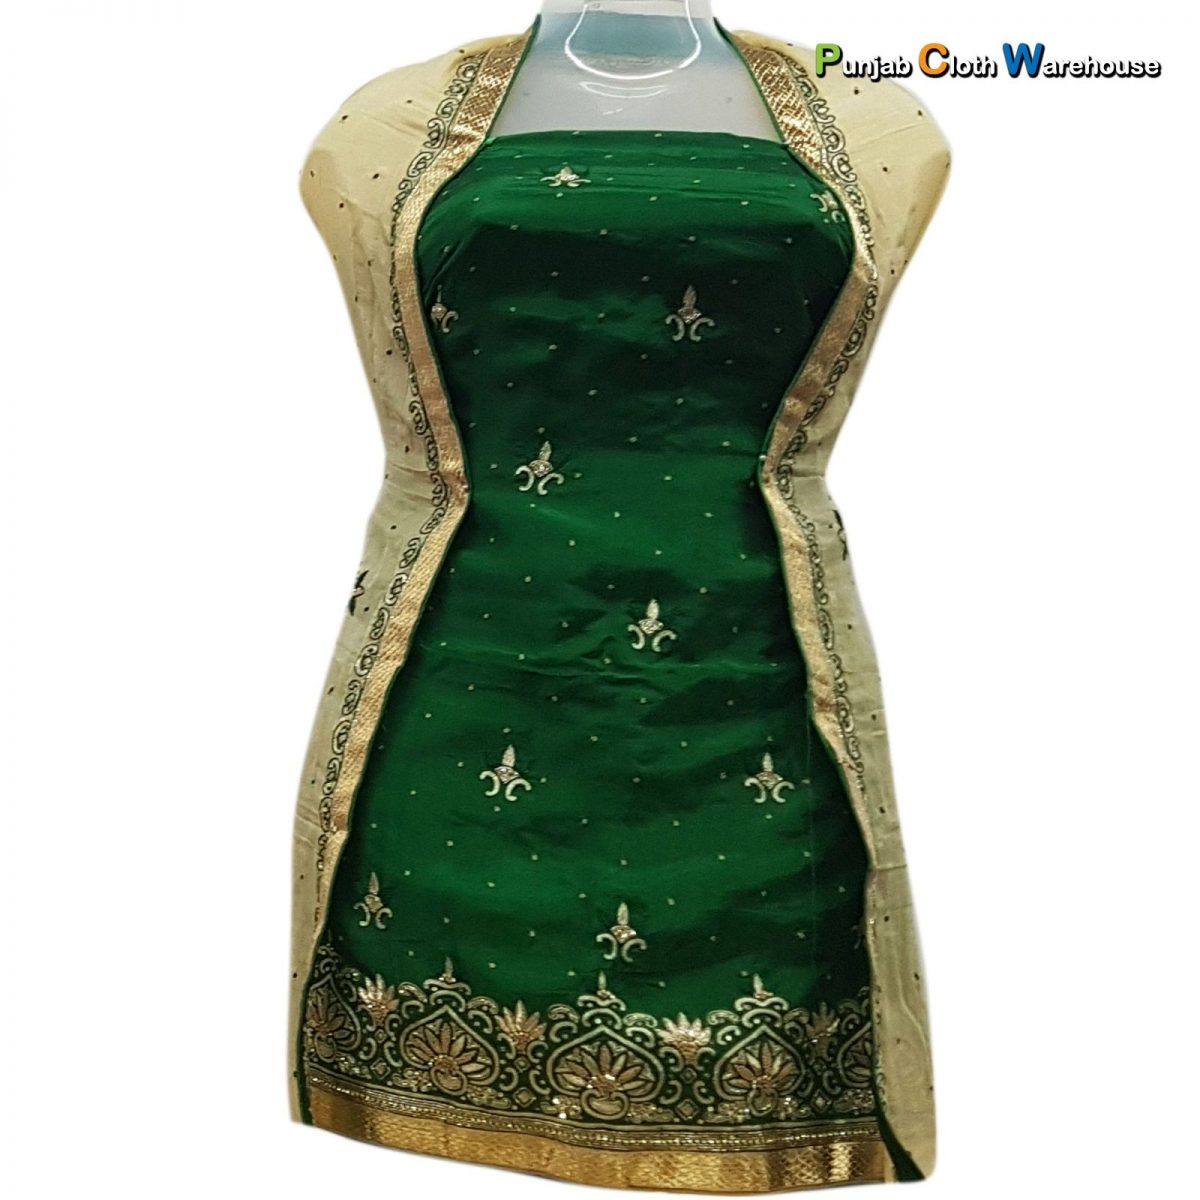 Ladies Suits - Cut Piece - Punjab Cloth Warehouse, Surrey (13)